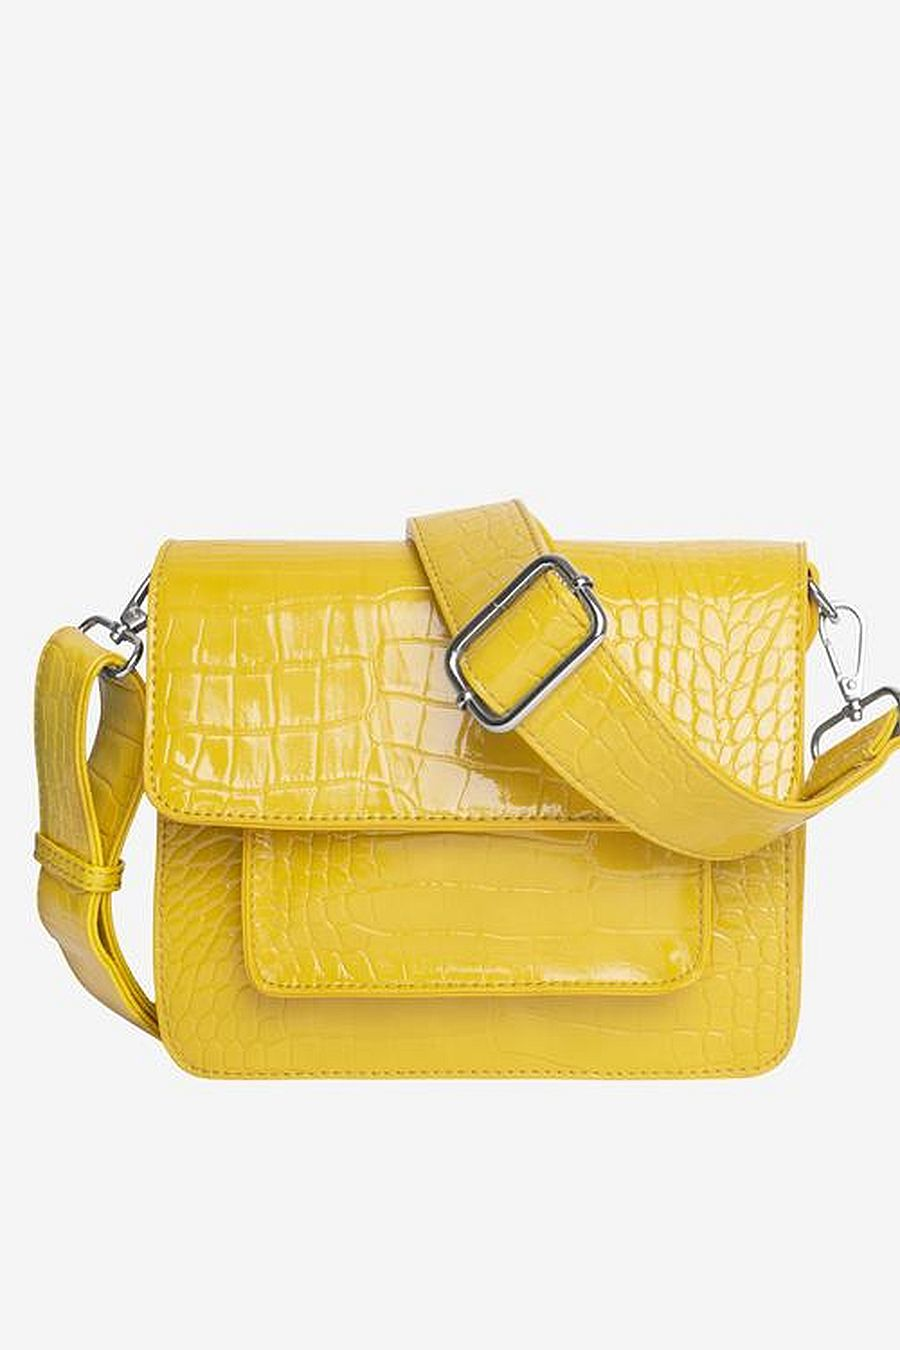 HVISK Cayman Pocket - Yellow